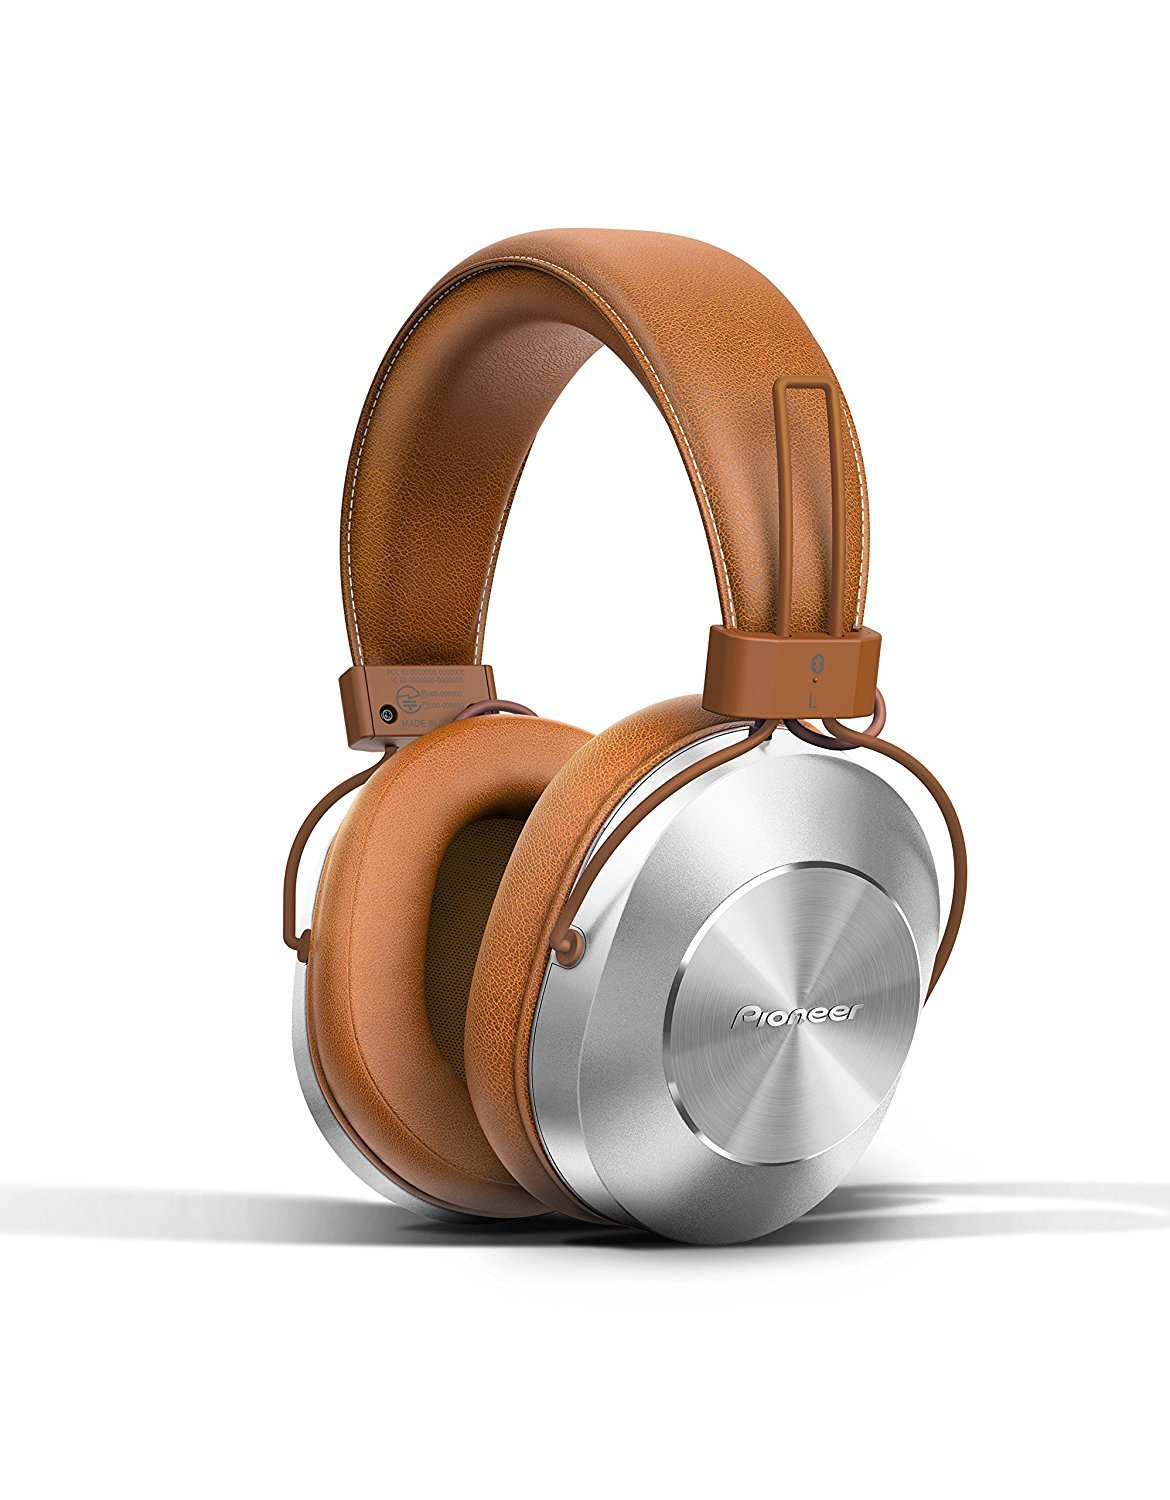 Pioneer Bluetooth and High-Resolution Over Ear Wireless Headphone, Brown (SE-MS7BT-T)